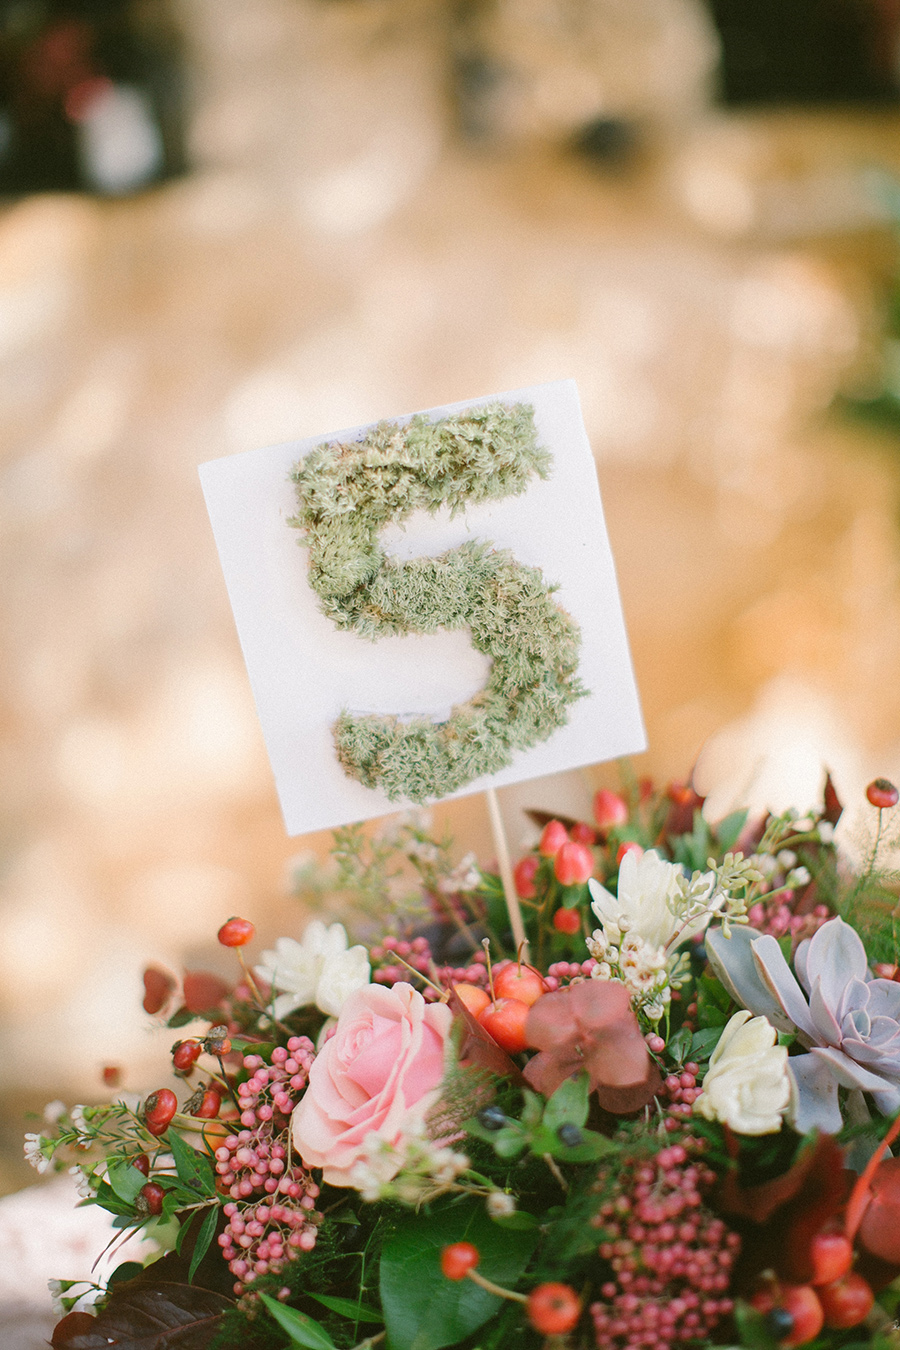 Boho Chic Inspired Wedding Table Number with Moss / styled shoot coordinated by Love 4 Wed / photo by Anna Roussos Photography